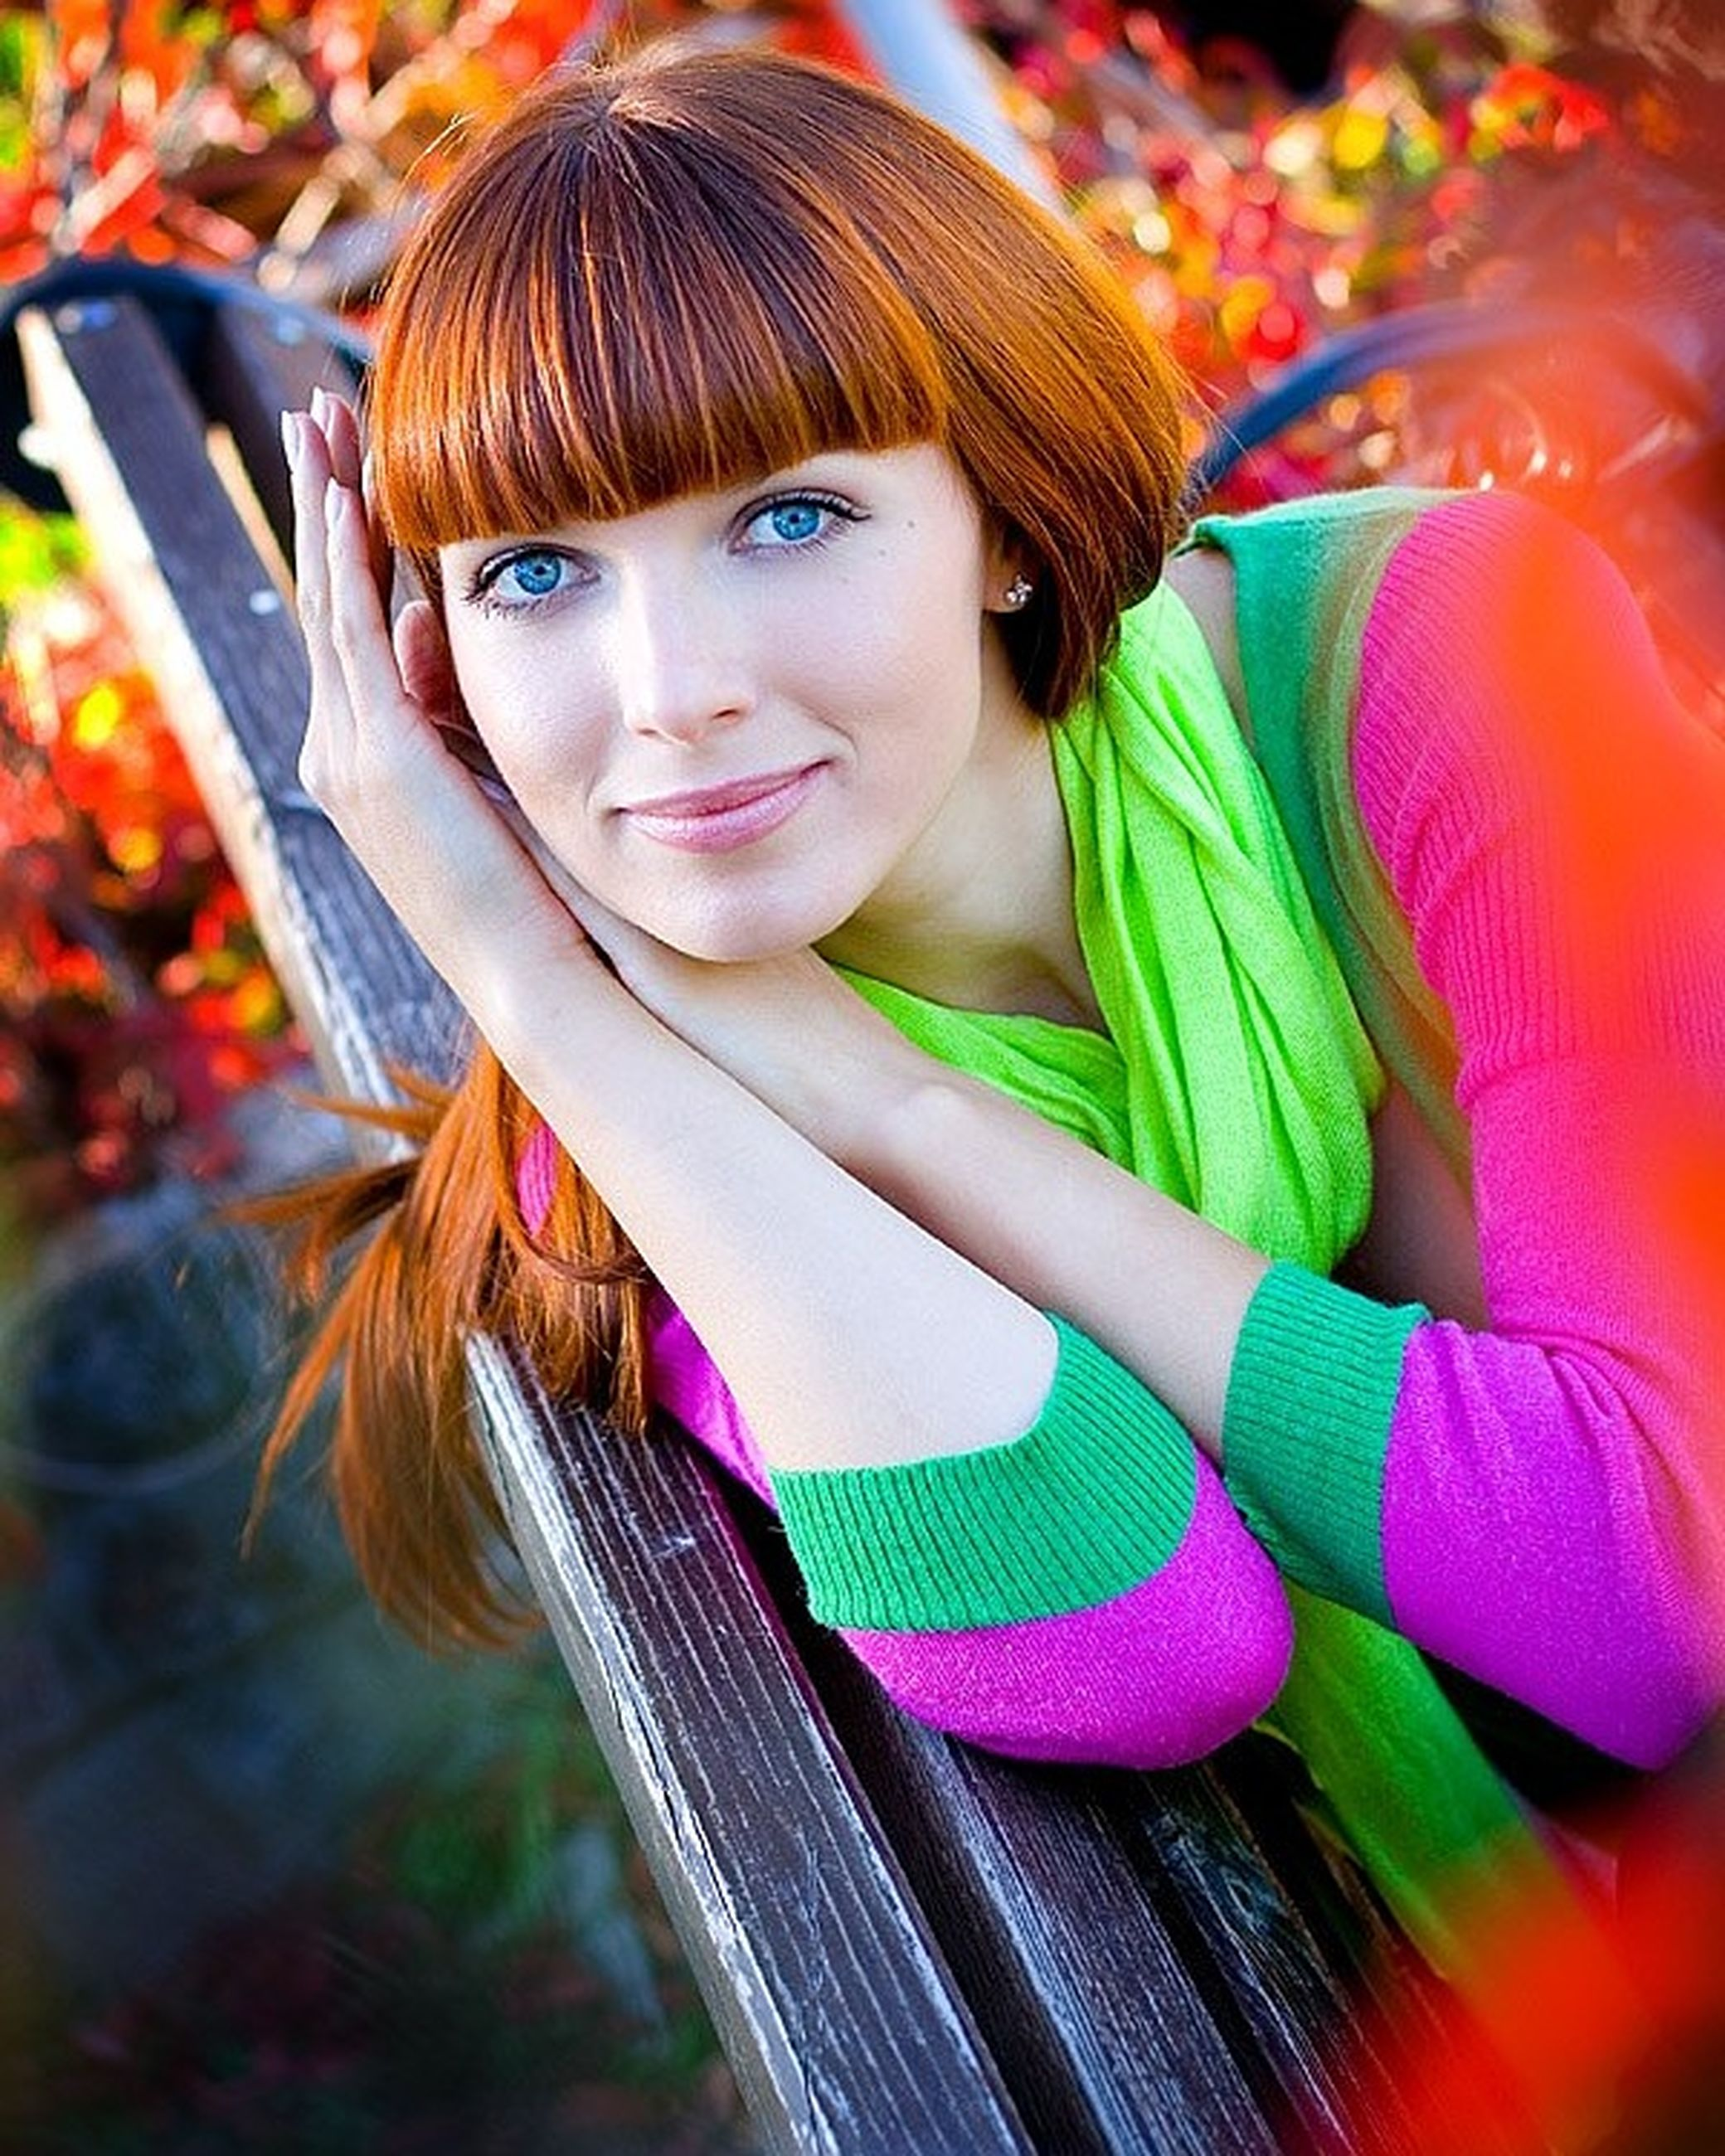 only women, redhead, portrait, one woman only, beautiful people, smiling, bangs, happiness, beauty, young adult, beautiful woman, one young woman only, looking at camera, adult, young women, women, adults only, cheerful, people, one person, multi colored, females, close-up, outdoors, dyed hair, day